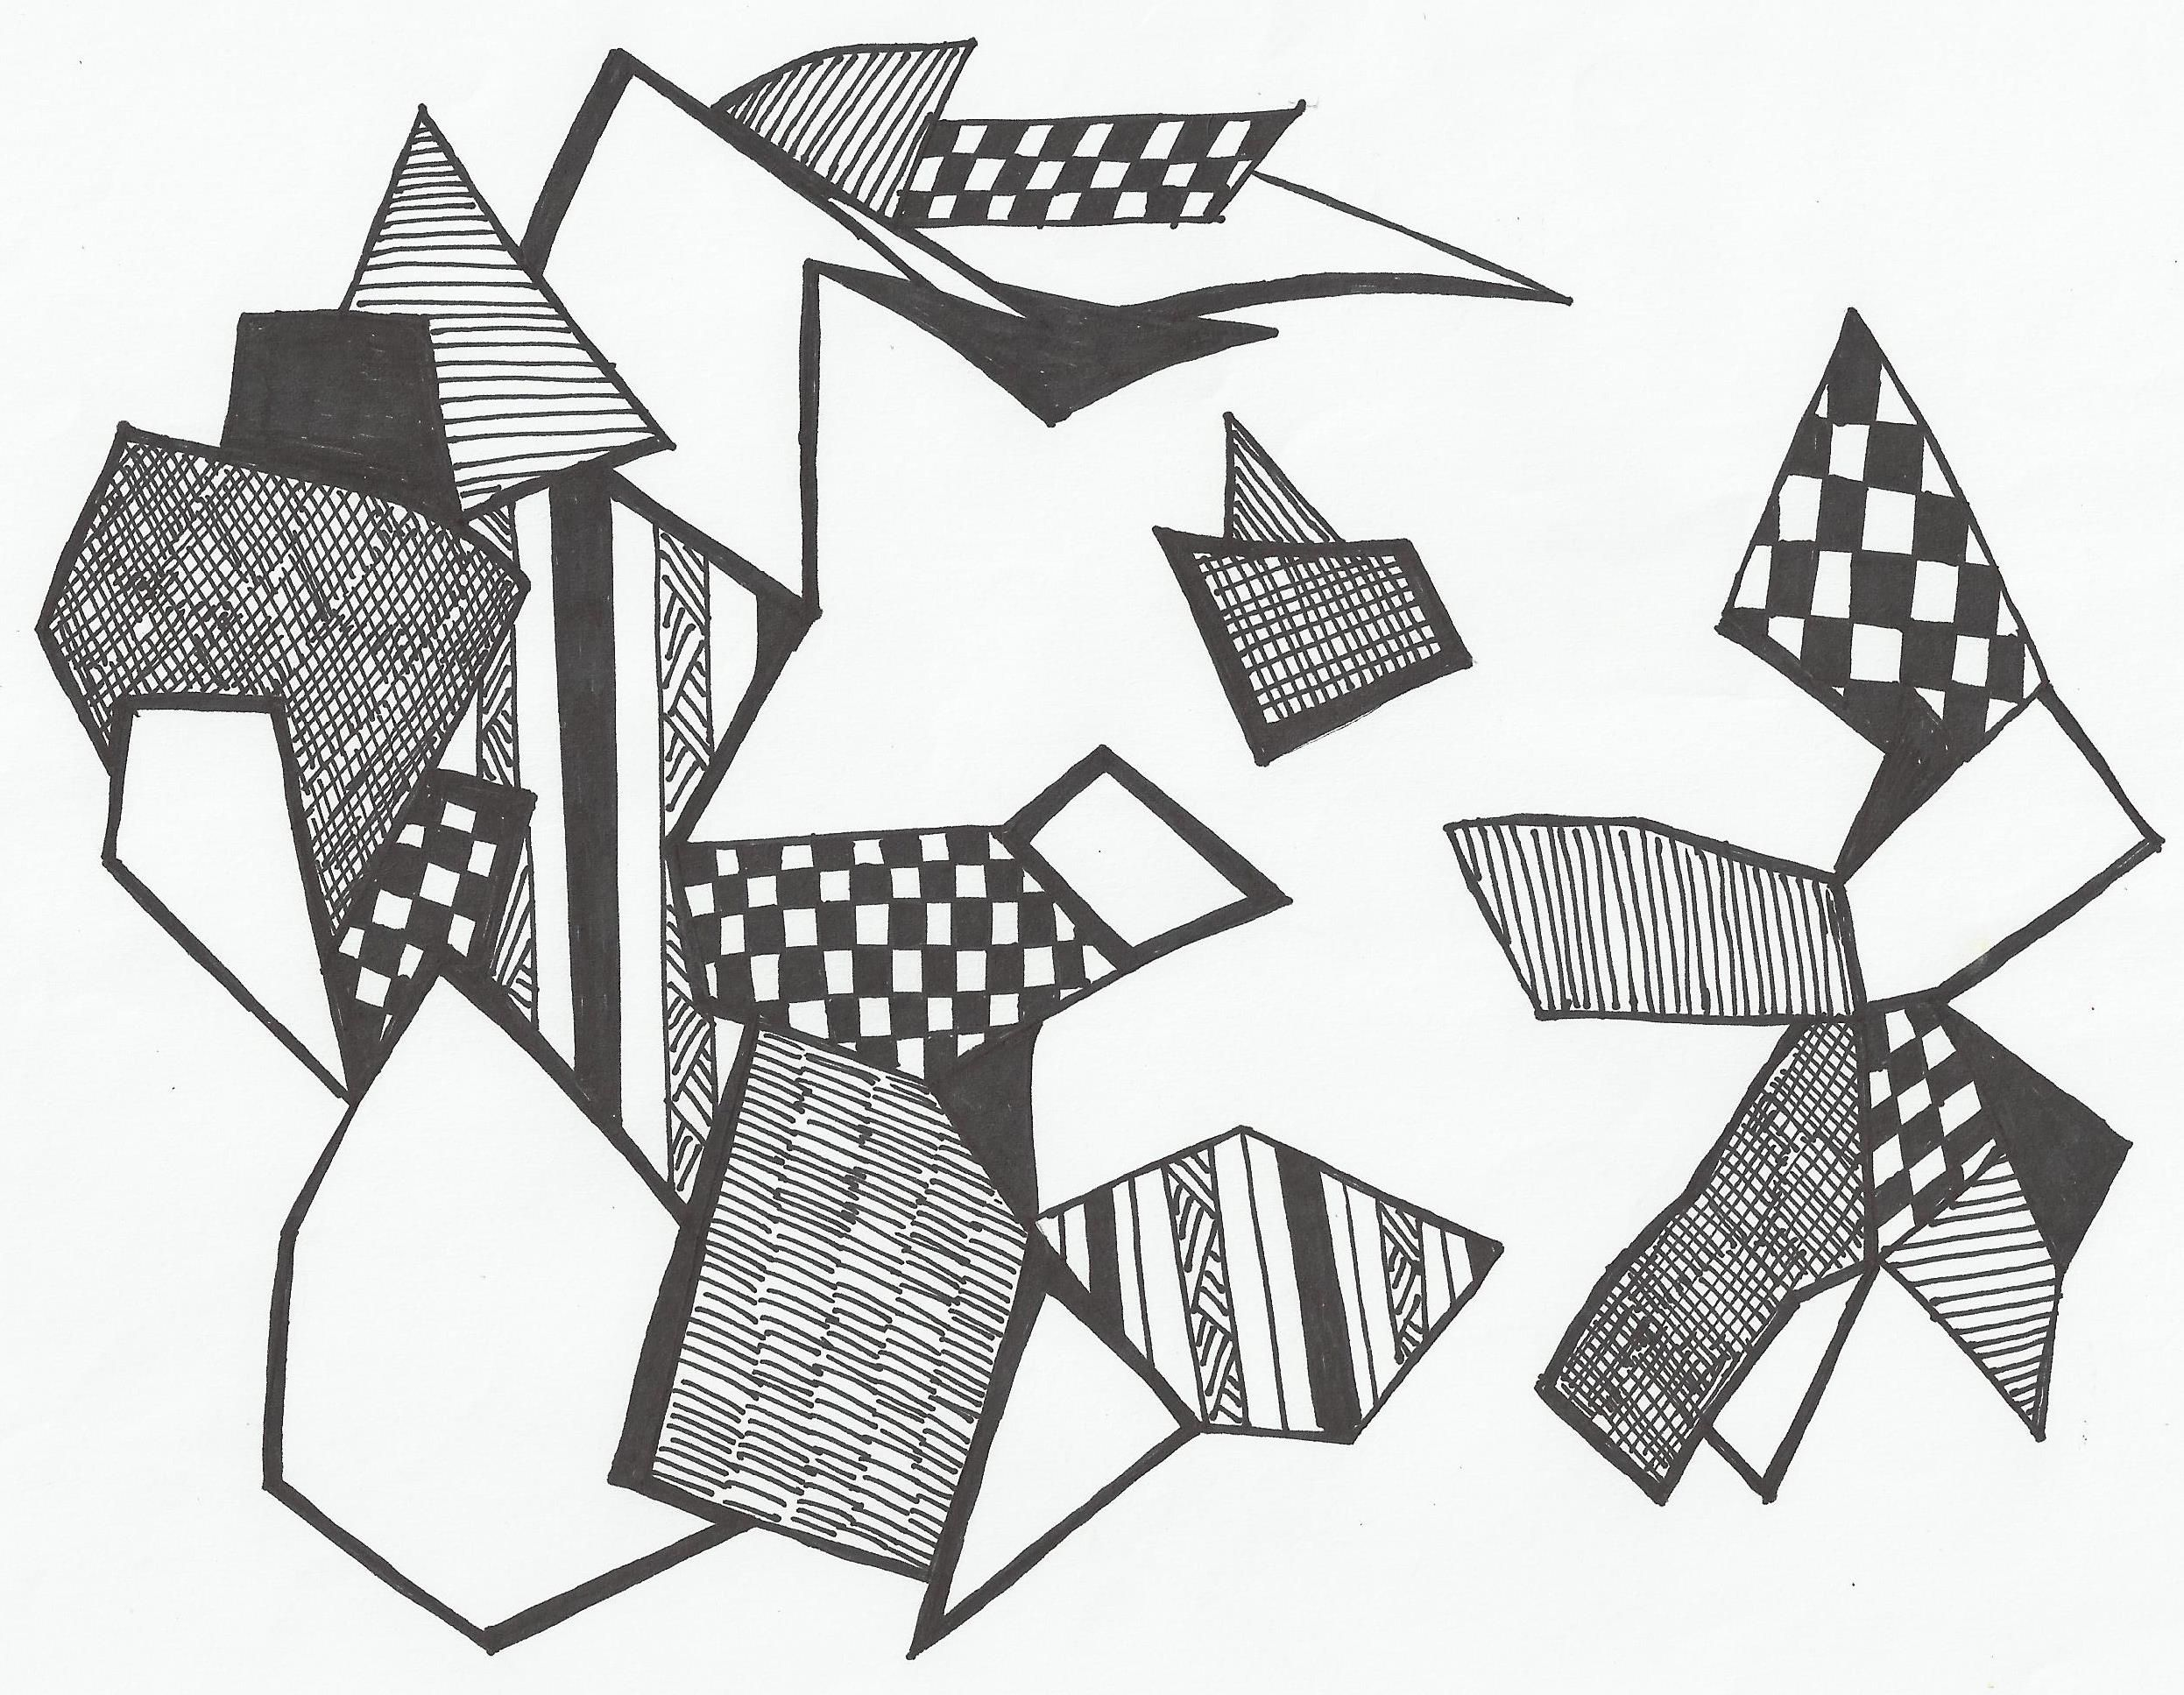 2493x1935 Piecing The Puzzle Idle Mind Sketches Sketches